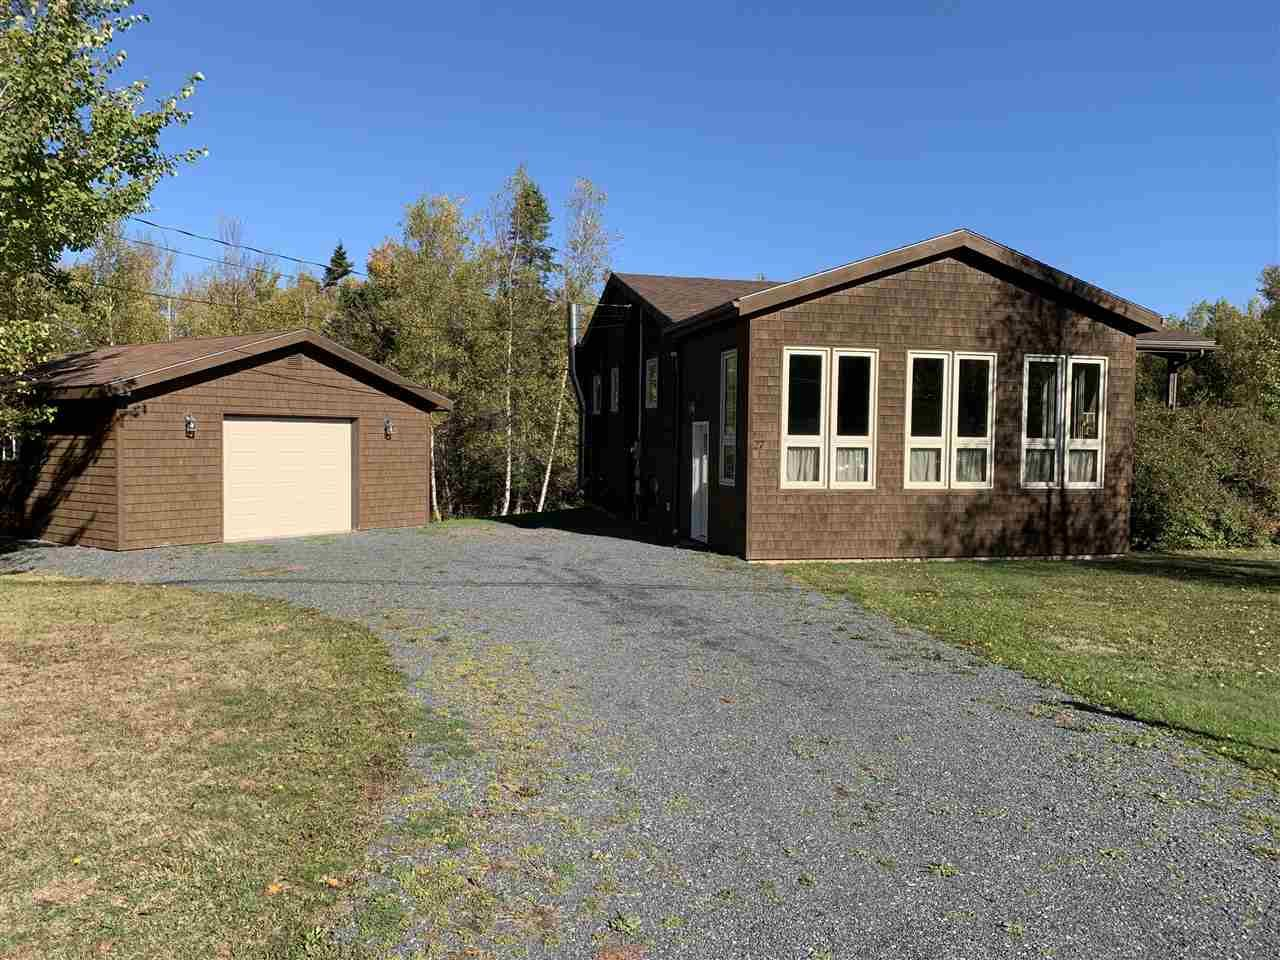 Main Photo: 27 Sandstone Drive in Kings Head: 108-Rural Pictou County Residential for sale (Northern Region)  : MLS®# 202013166